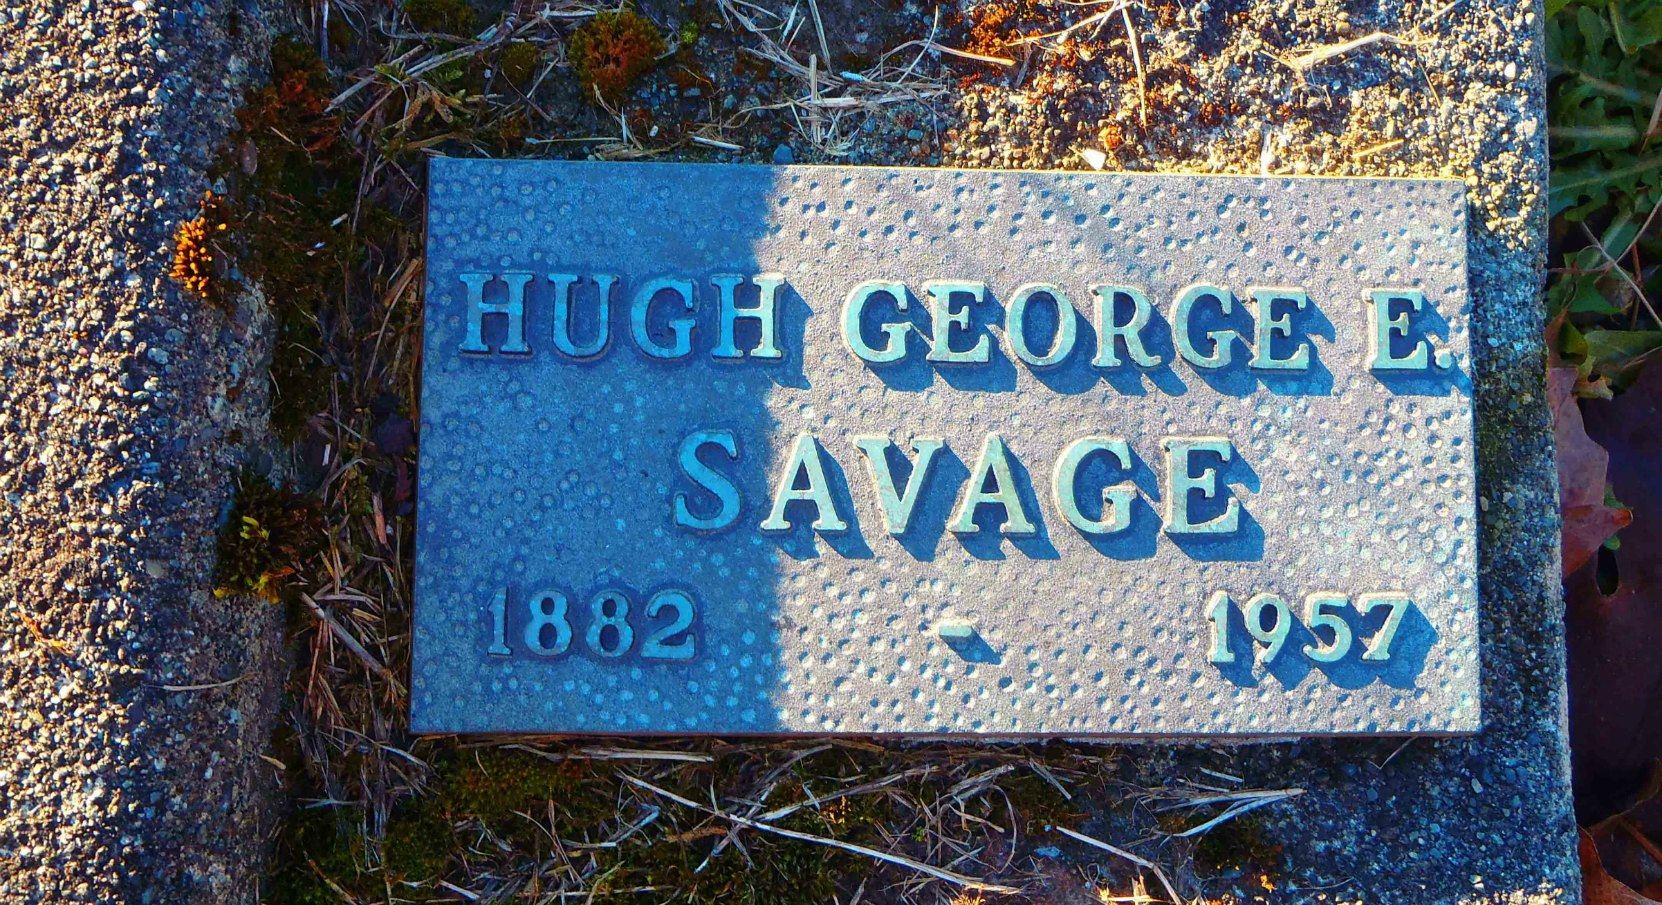 Hugh George Savage grave marker, St. Mary's Somenos cemetery, North Cowichan, B.C.